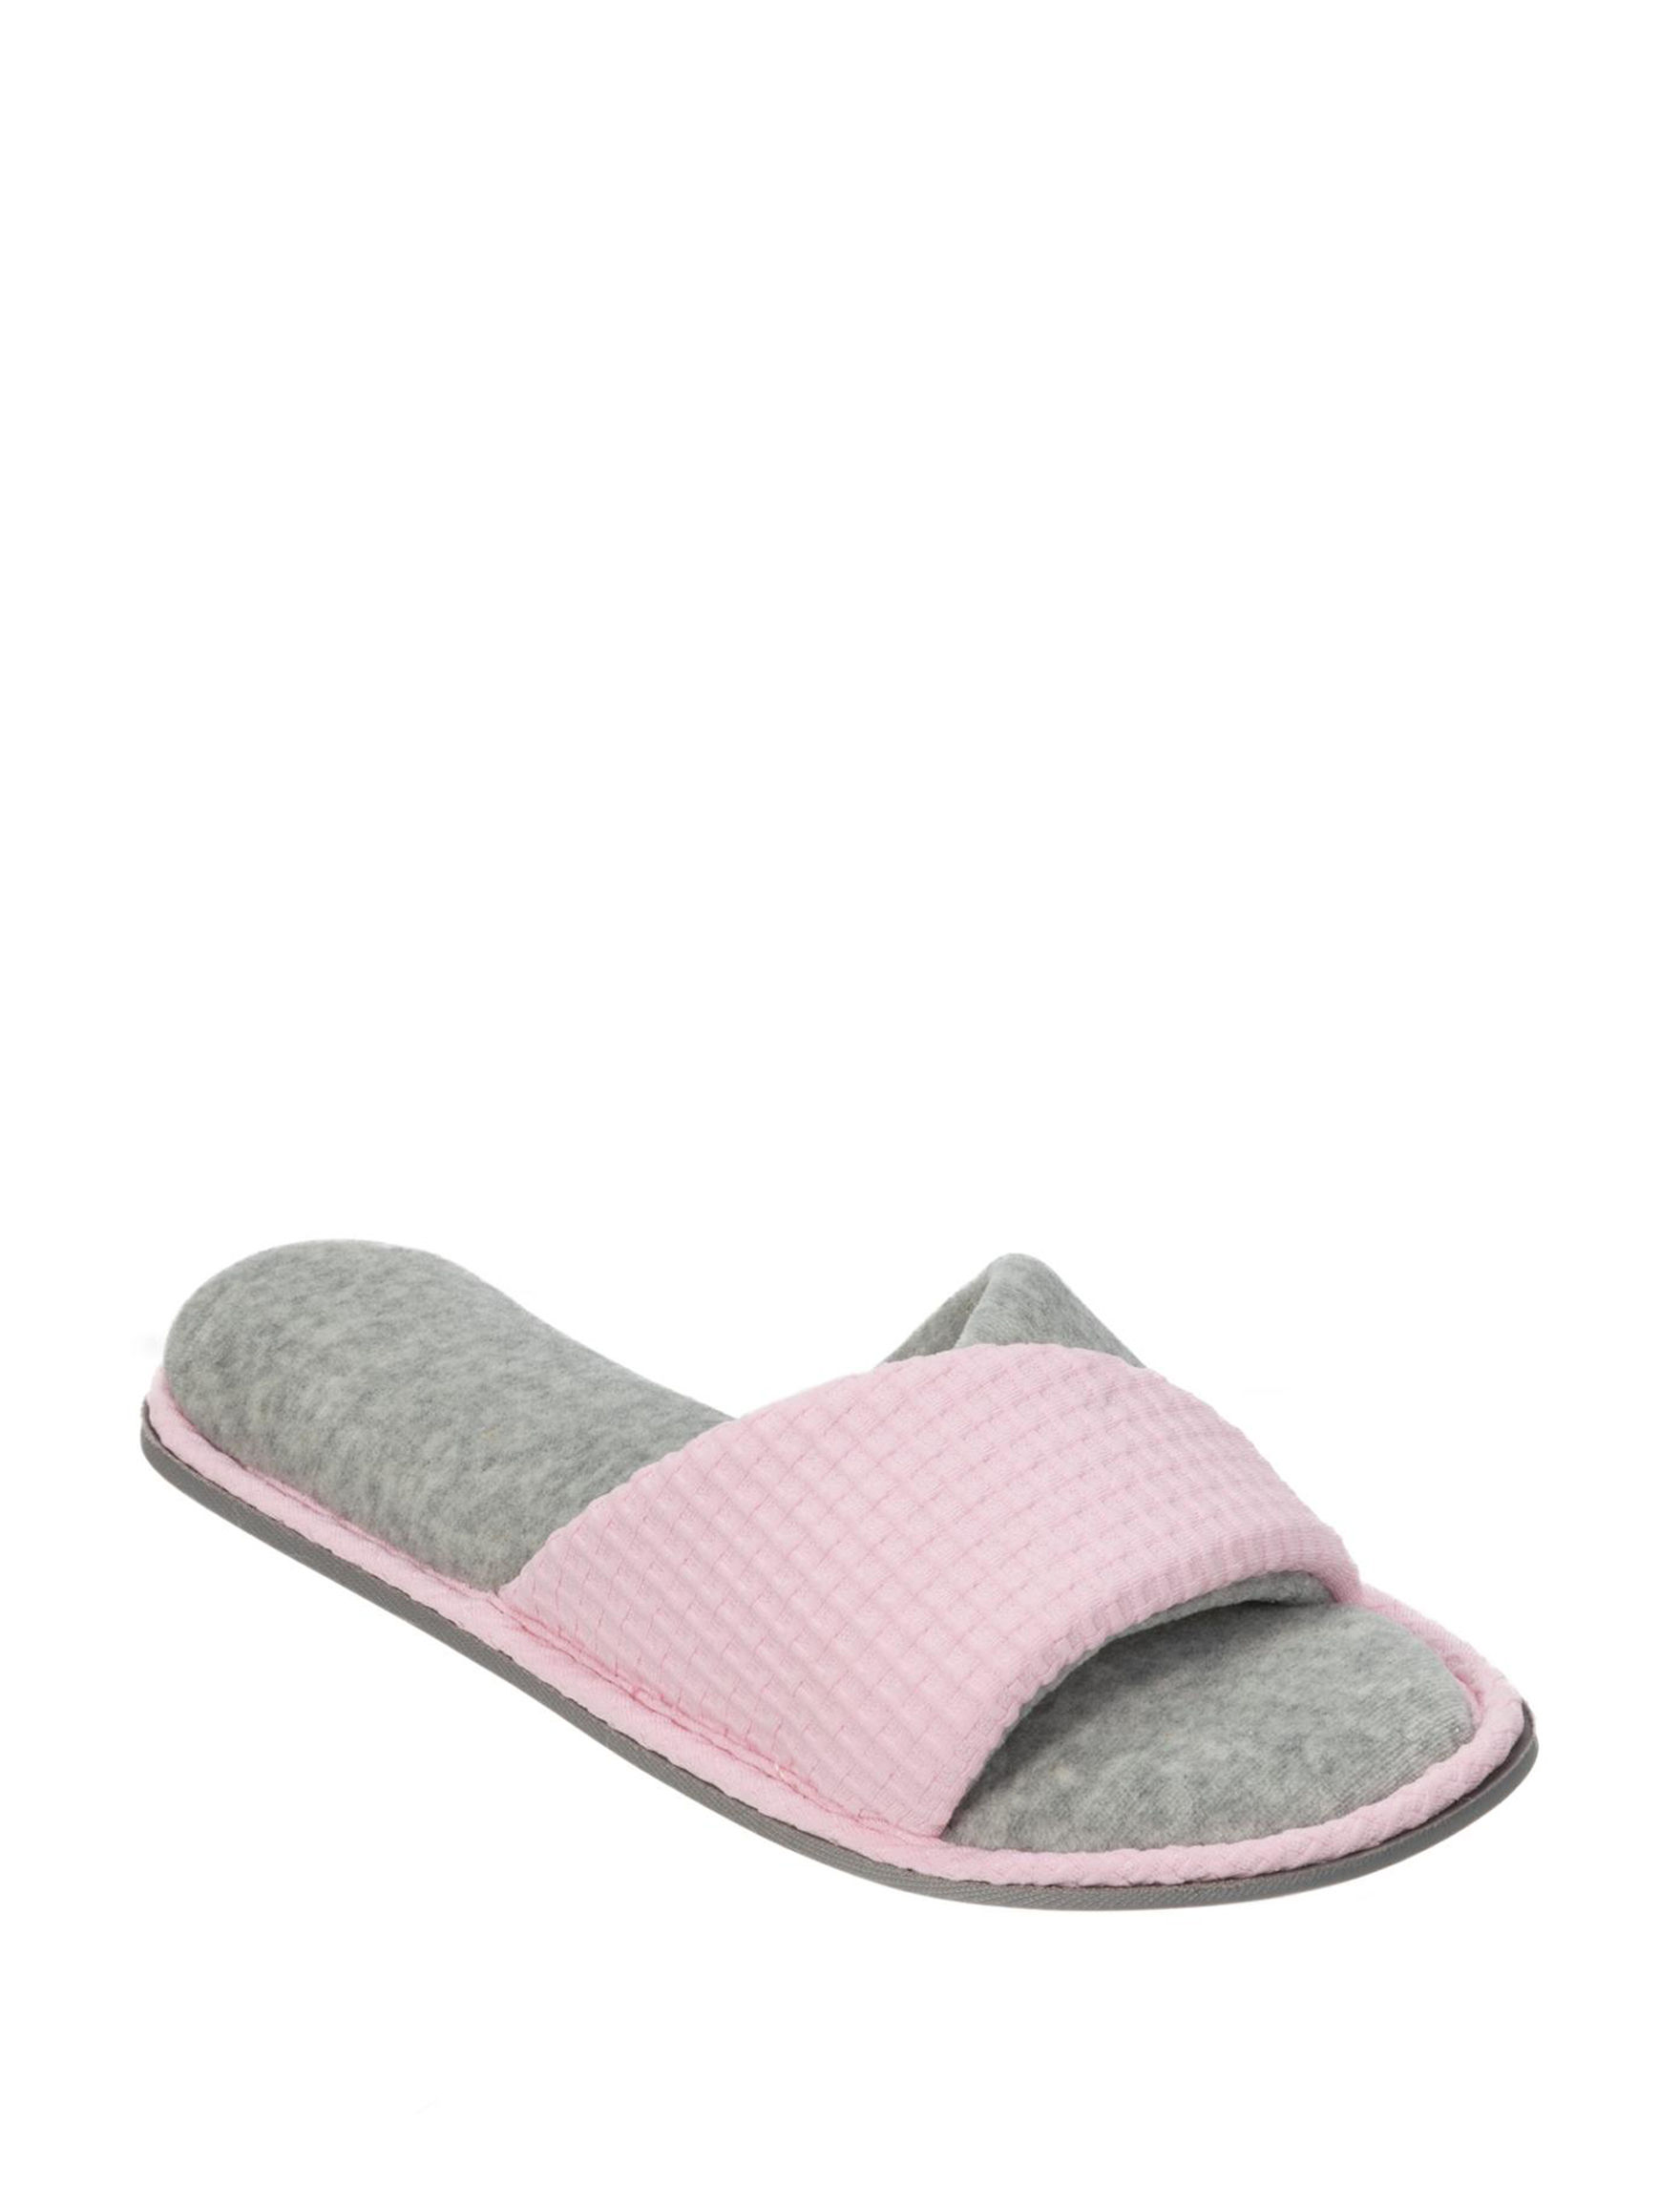 Dearfoams Pink Slipper Sandals